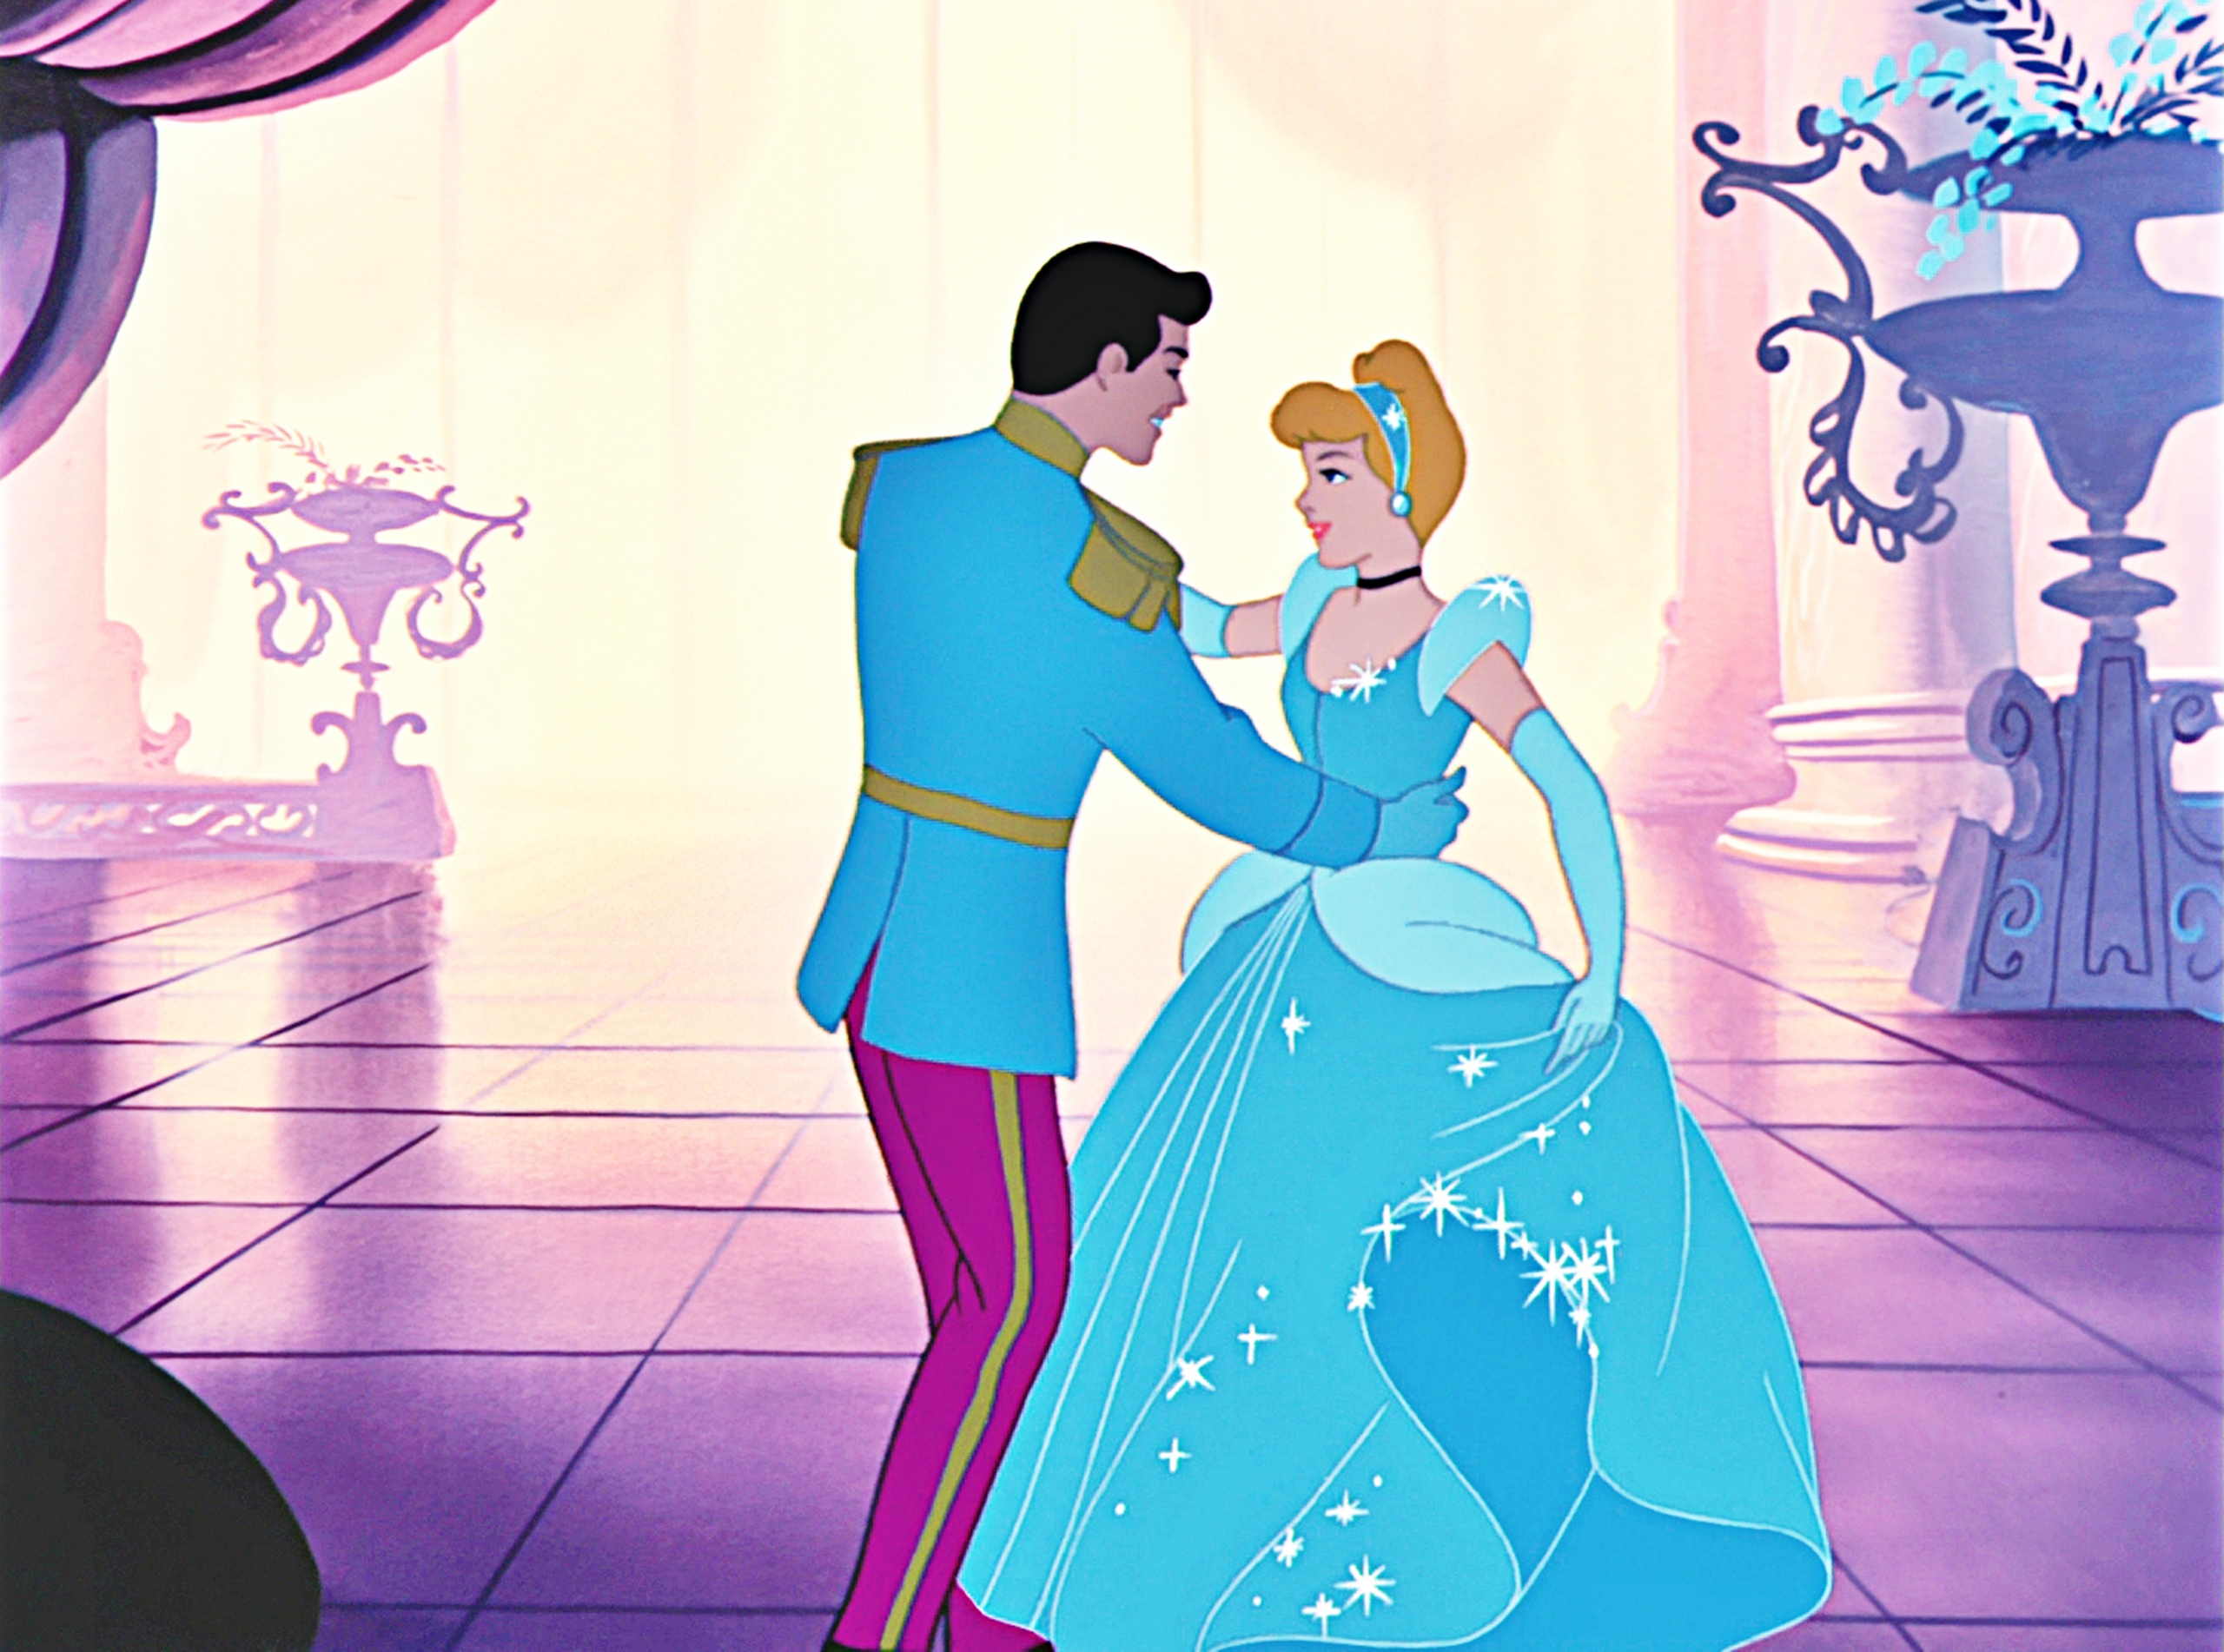 https://i2.wp.com/images5.fanpop.com/image/photos/32000000/Walt-Disney-Screencaps-Prince-Charming-Cinderella-cinderella-32064794-2560-1902.jpg